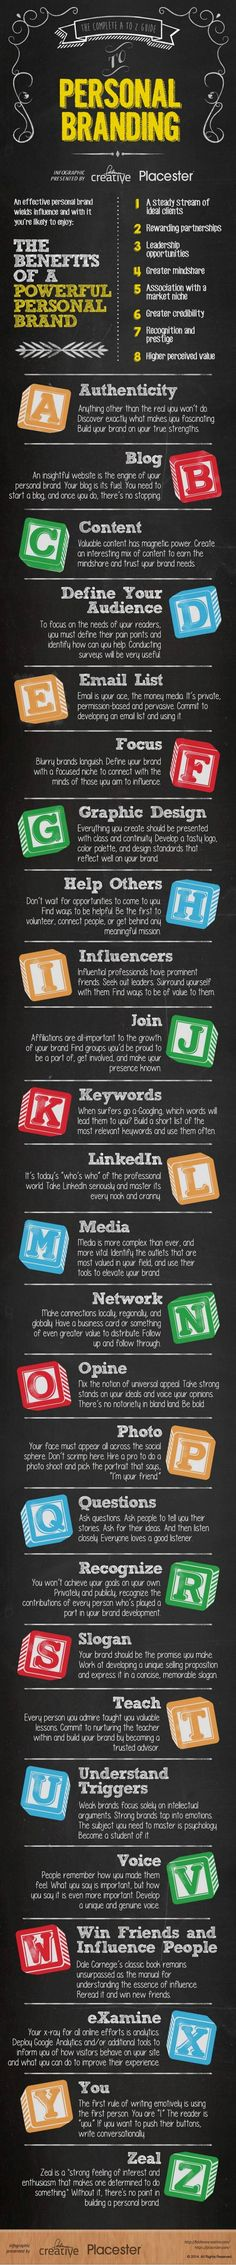 You Personal Branding Guide - A to Z #Infographic